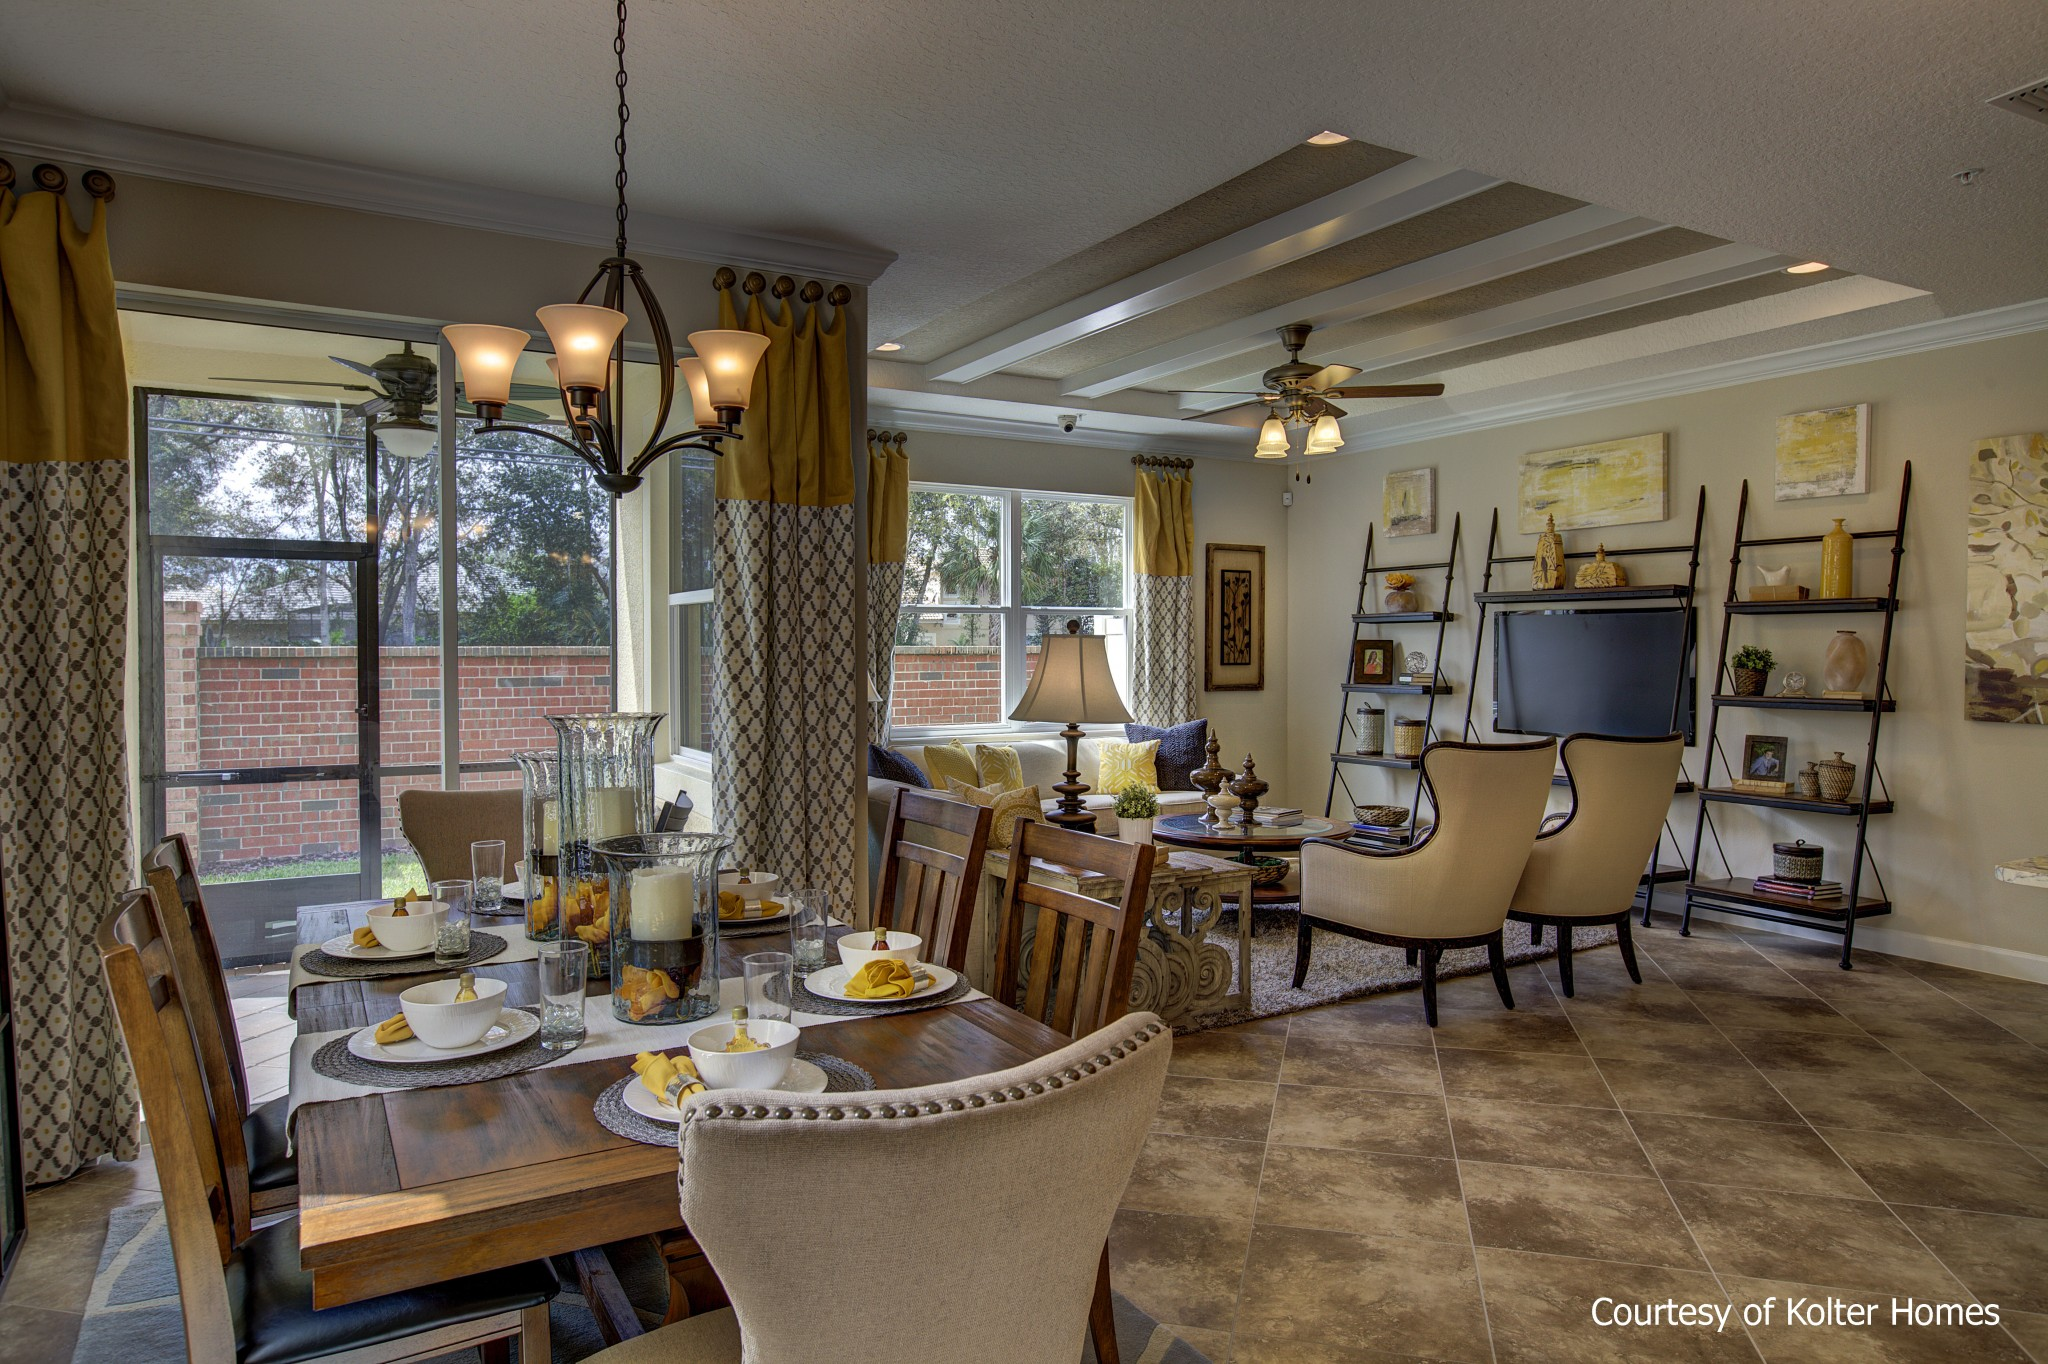 Grande Oaks at Heathrow - Kolter Homes - Dogwood Model | Design ...